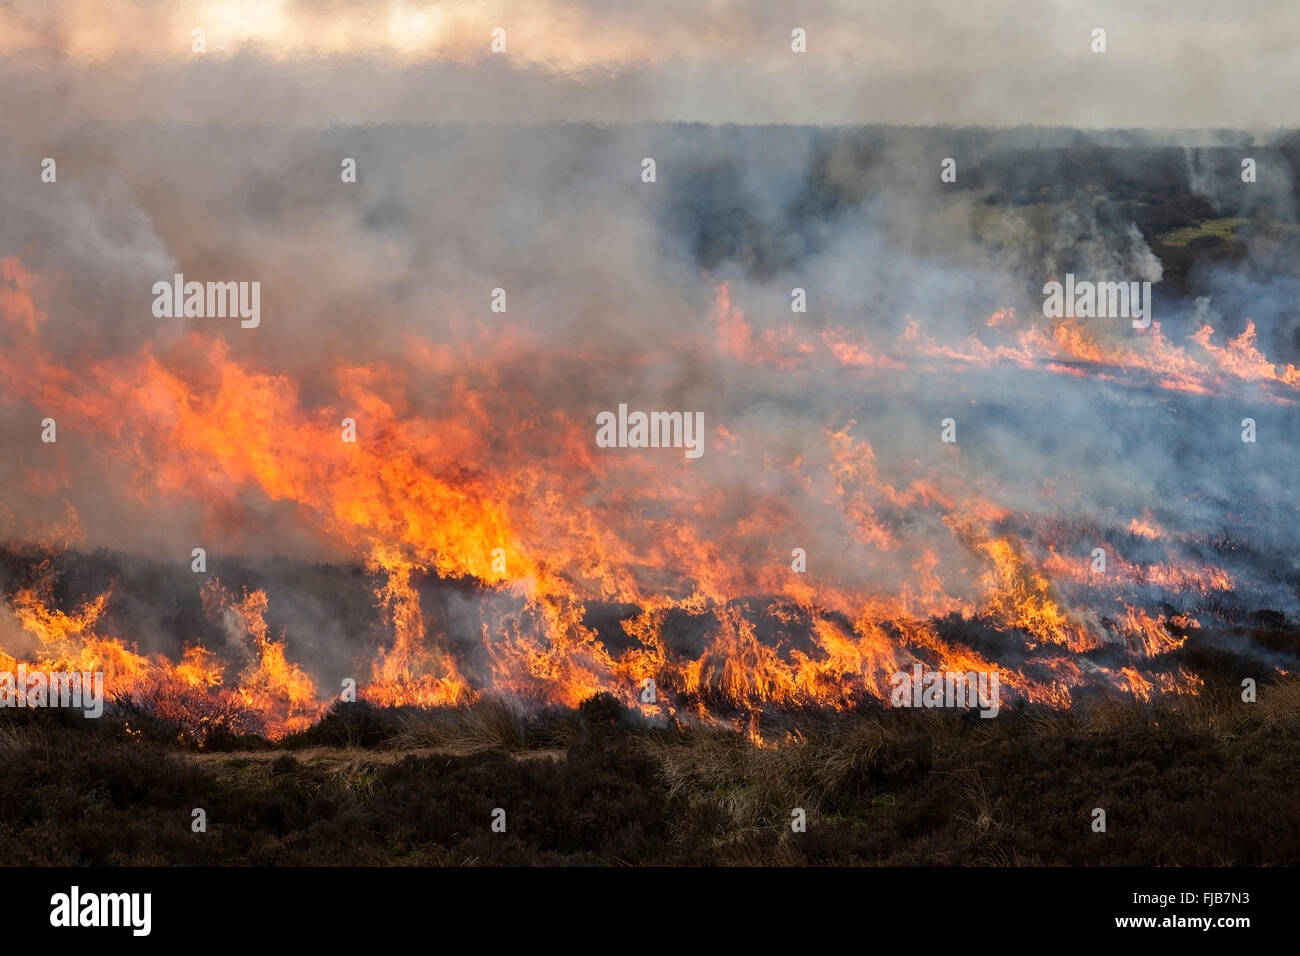 Fire Sweeping Across Moorland During Controlled Heather Burning in the North Pennines England UK - Stock Image